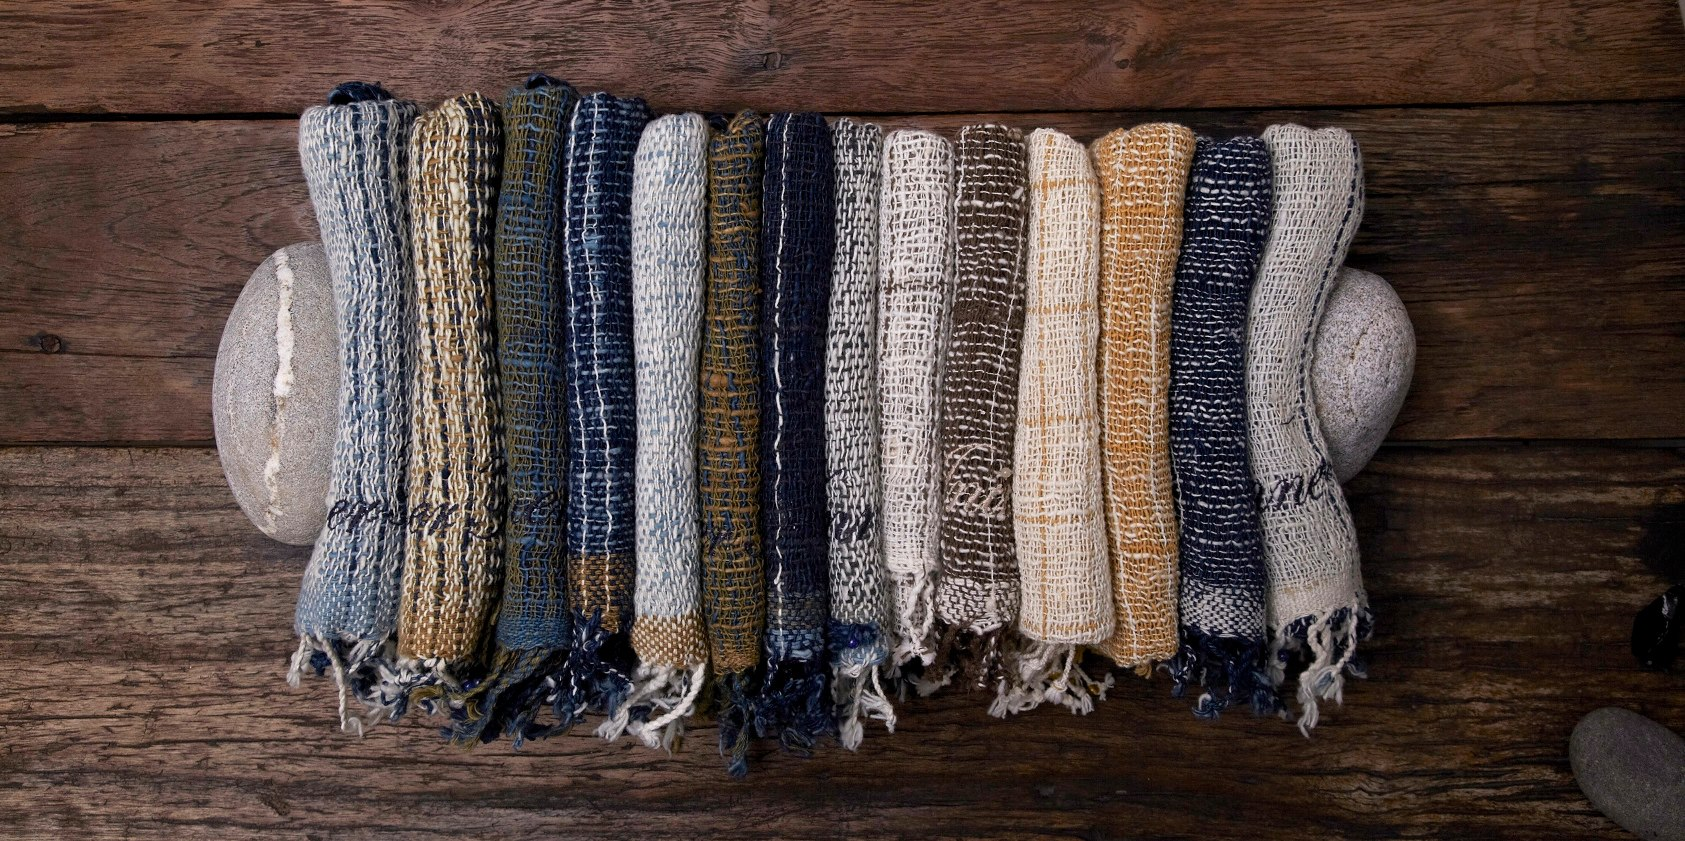 Each Apoccas product is made with hand looms.